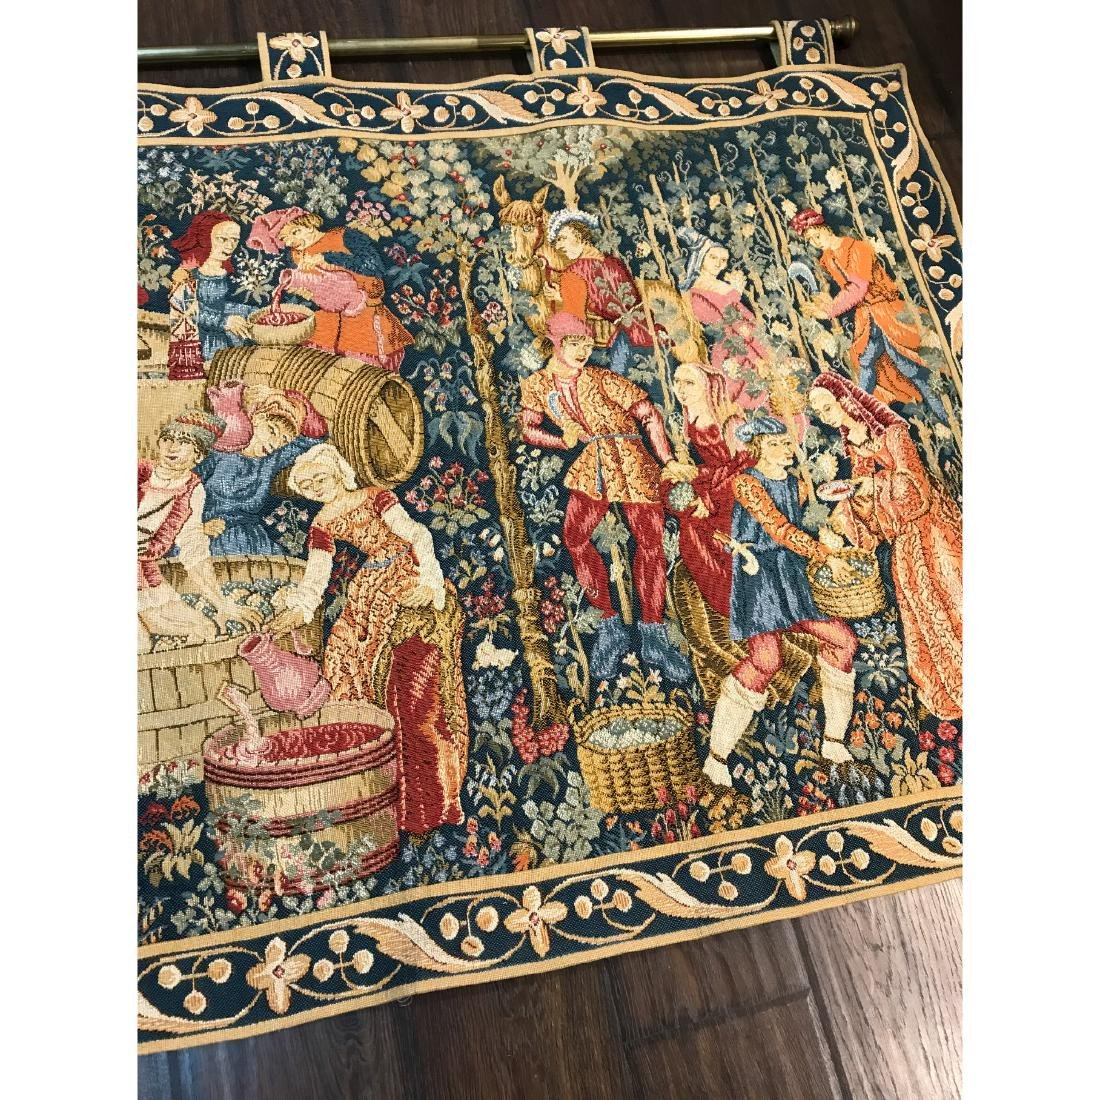 Tapestry with Scene of Medieval Wine Making w/ Rod - 3